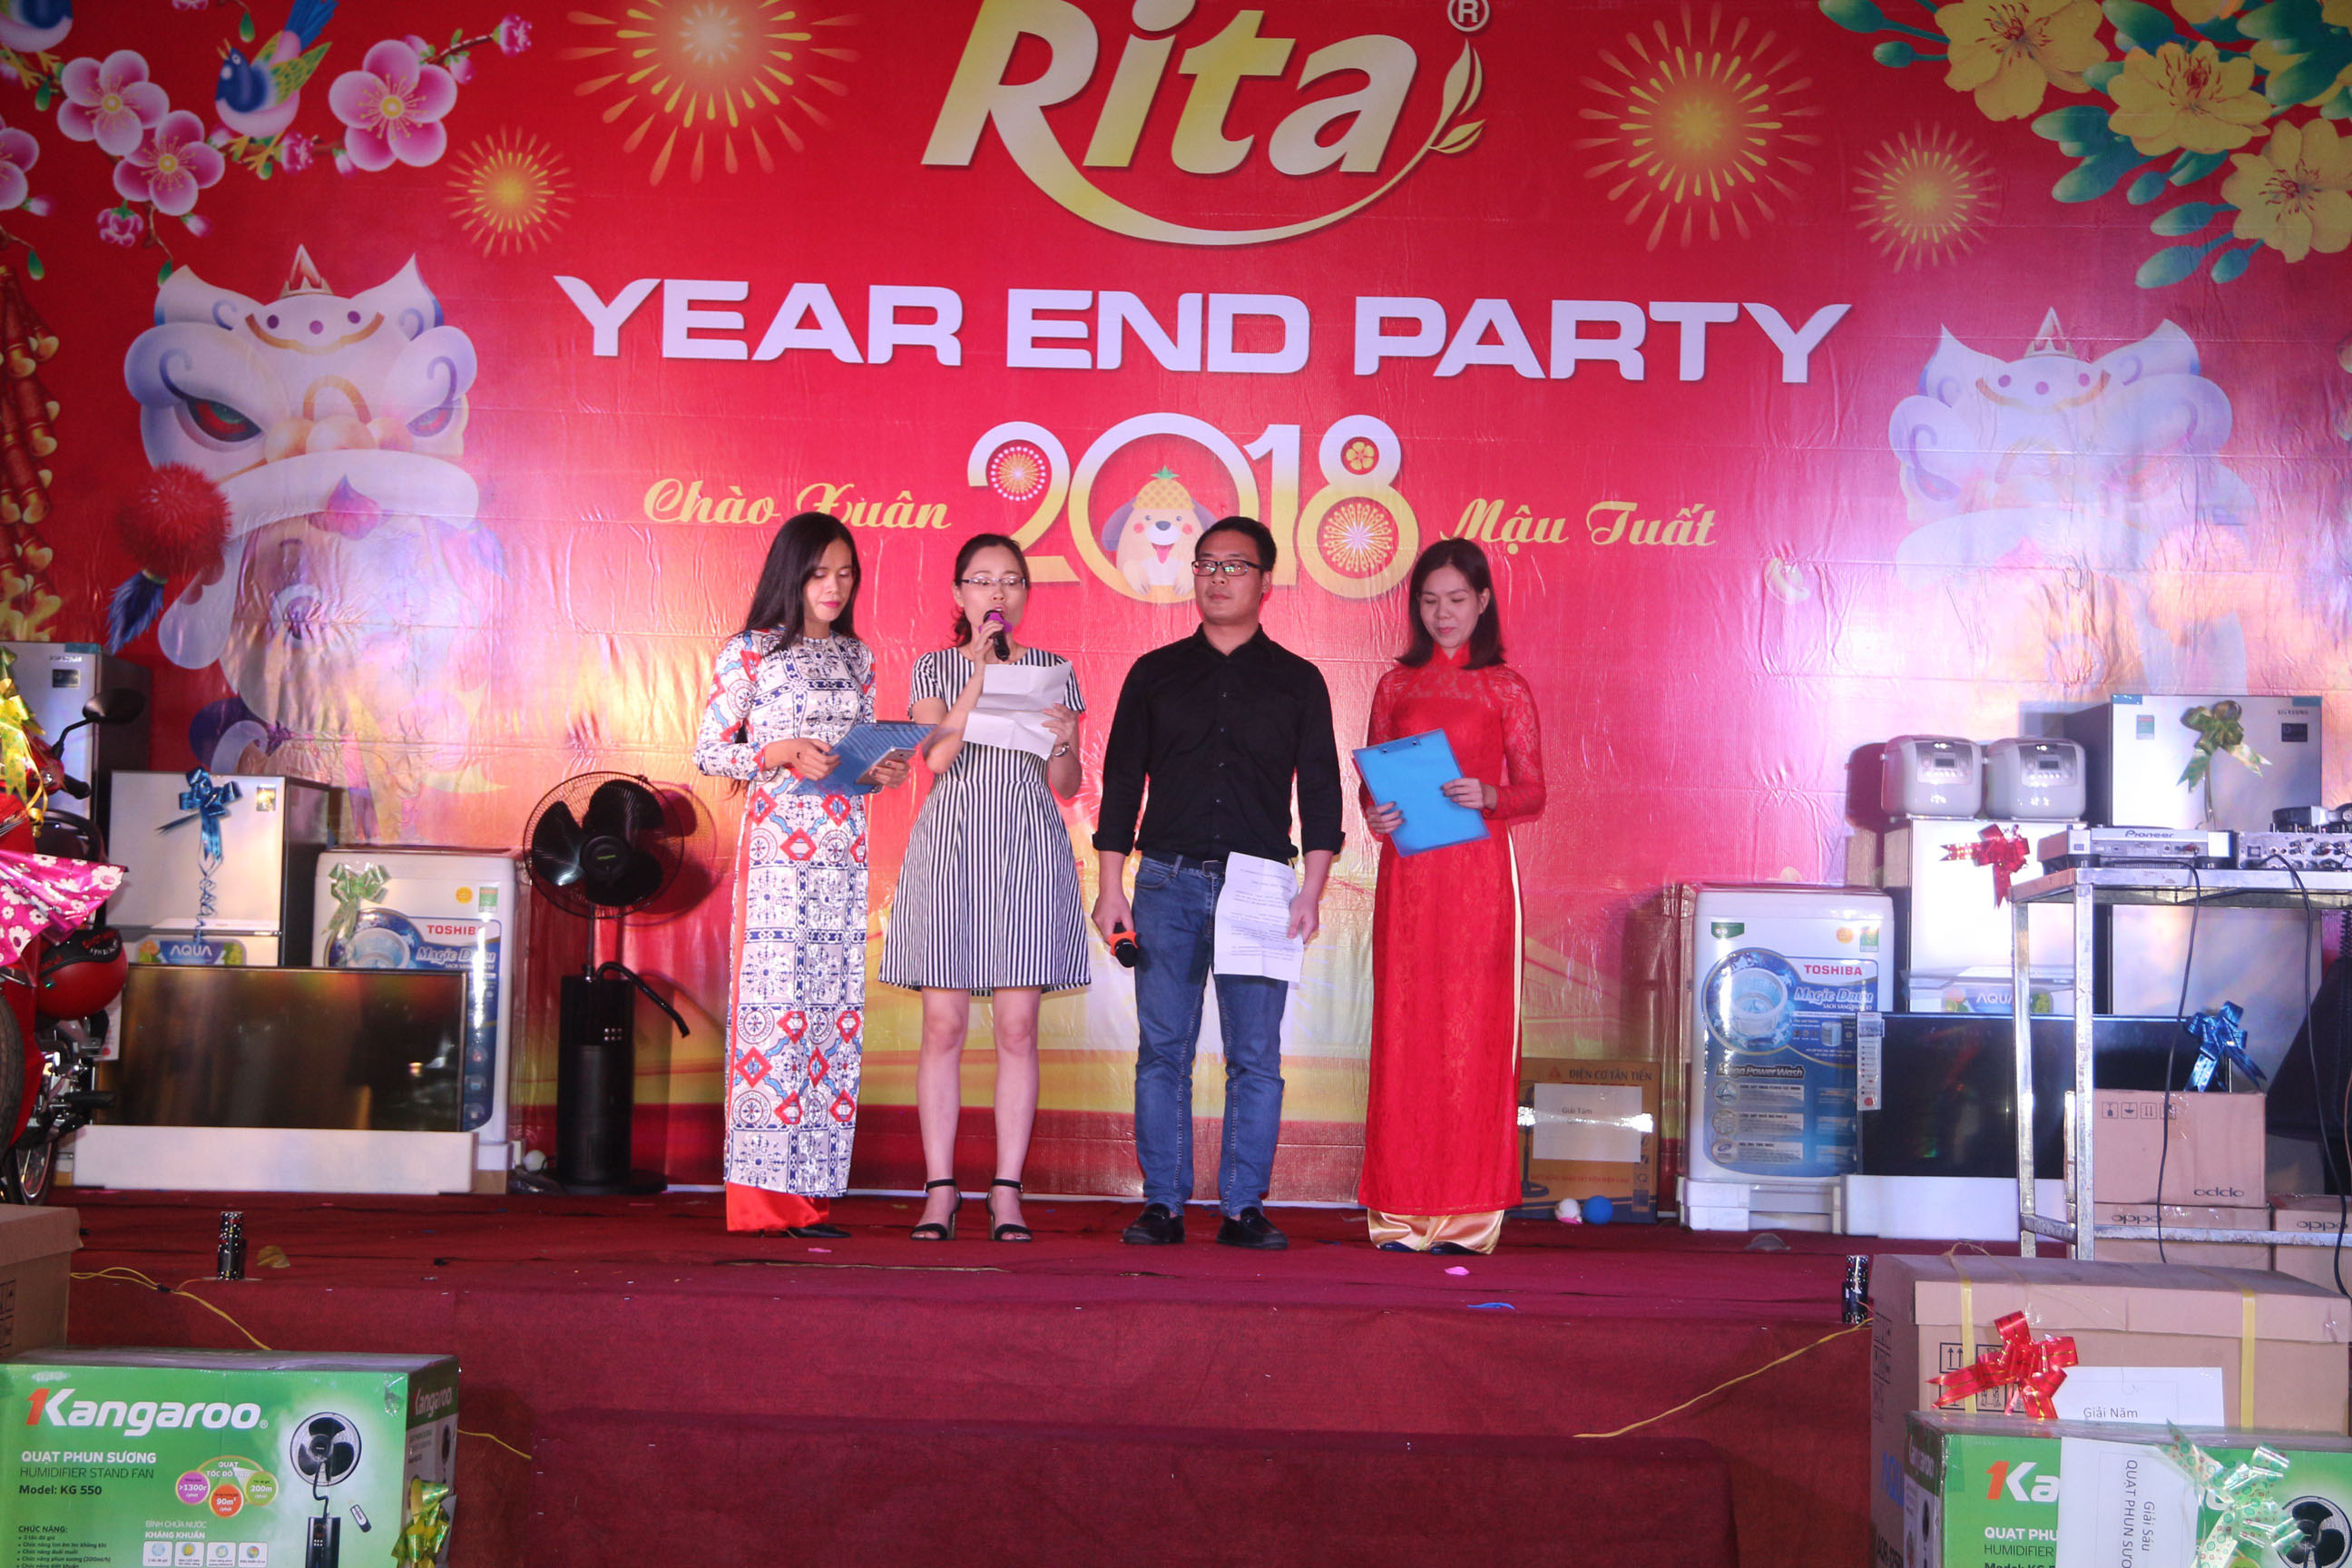 RITA Fruit Juice Manufacturing Suppliers - Party year end 2017 7